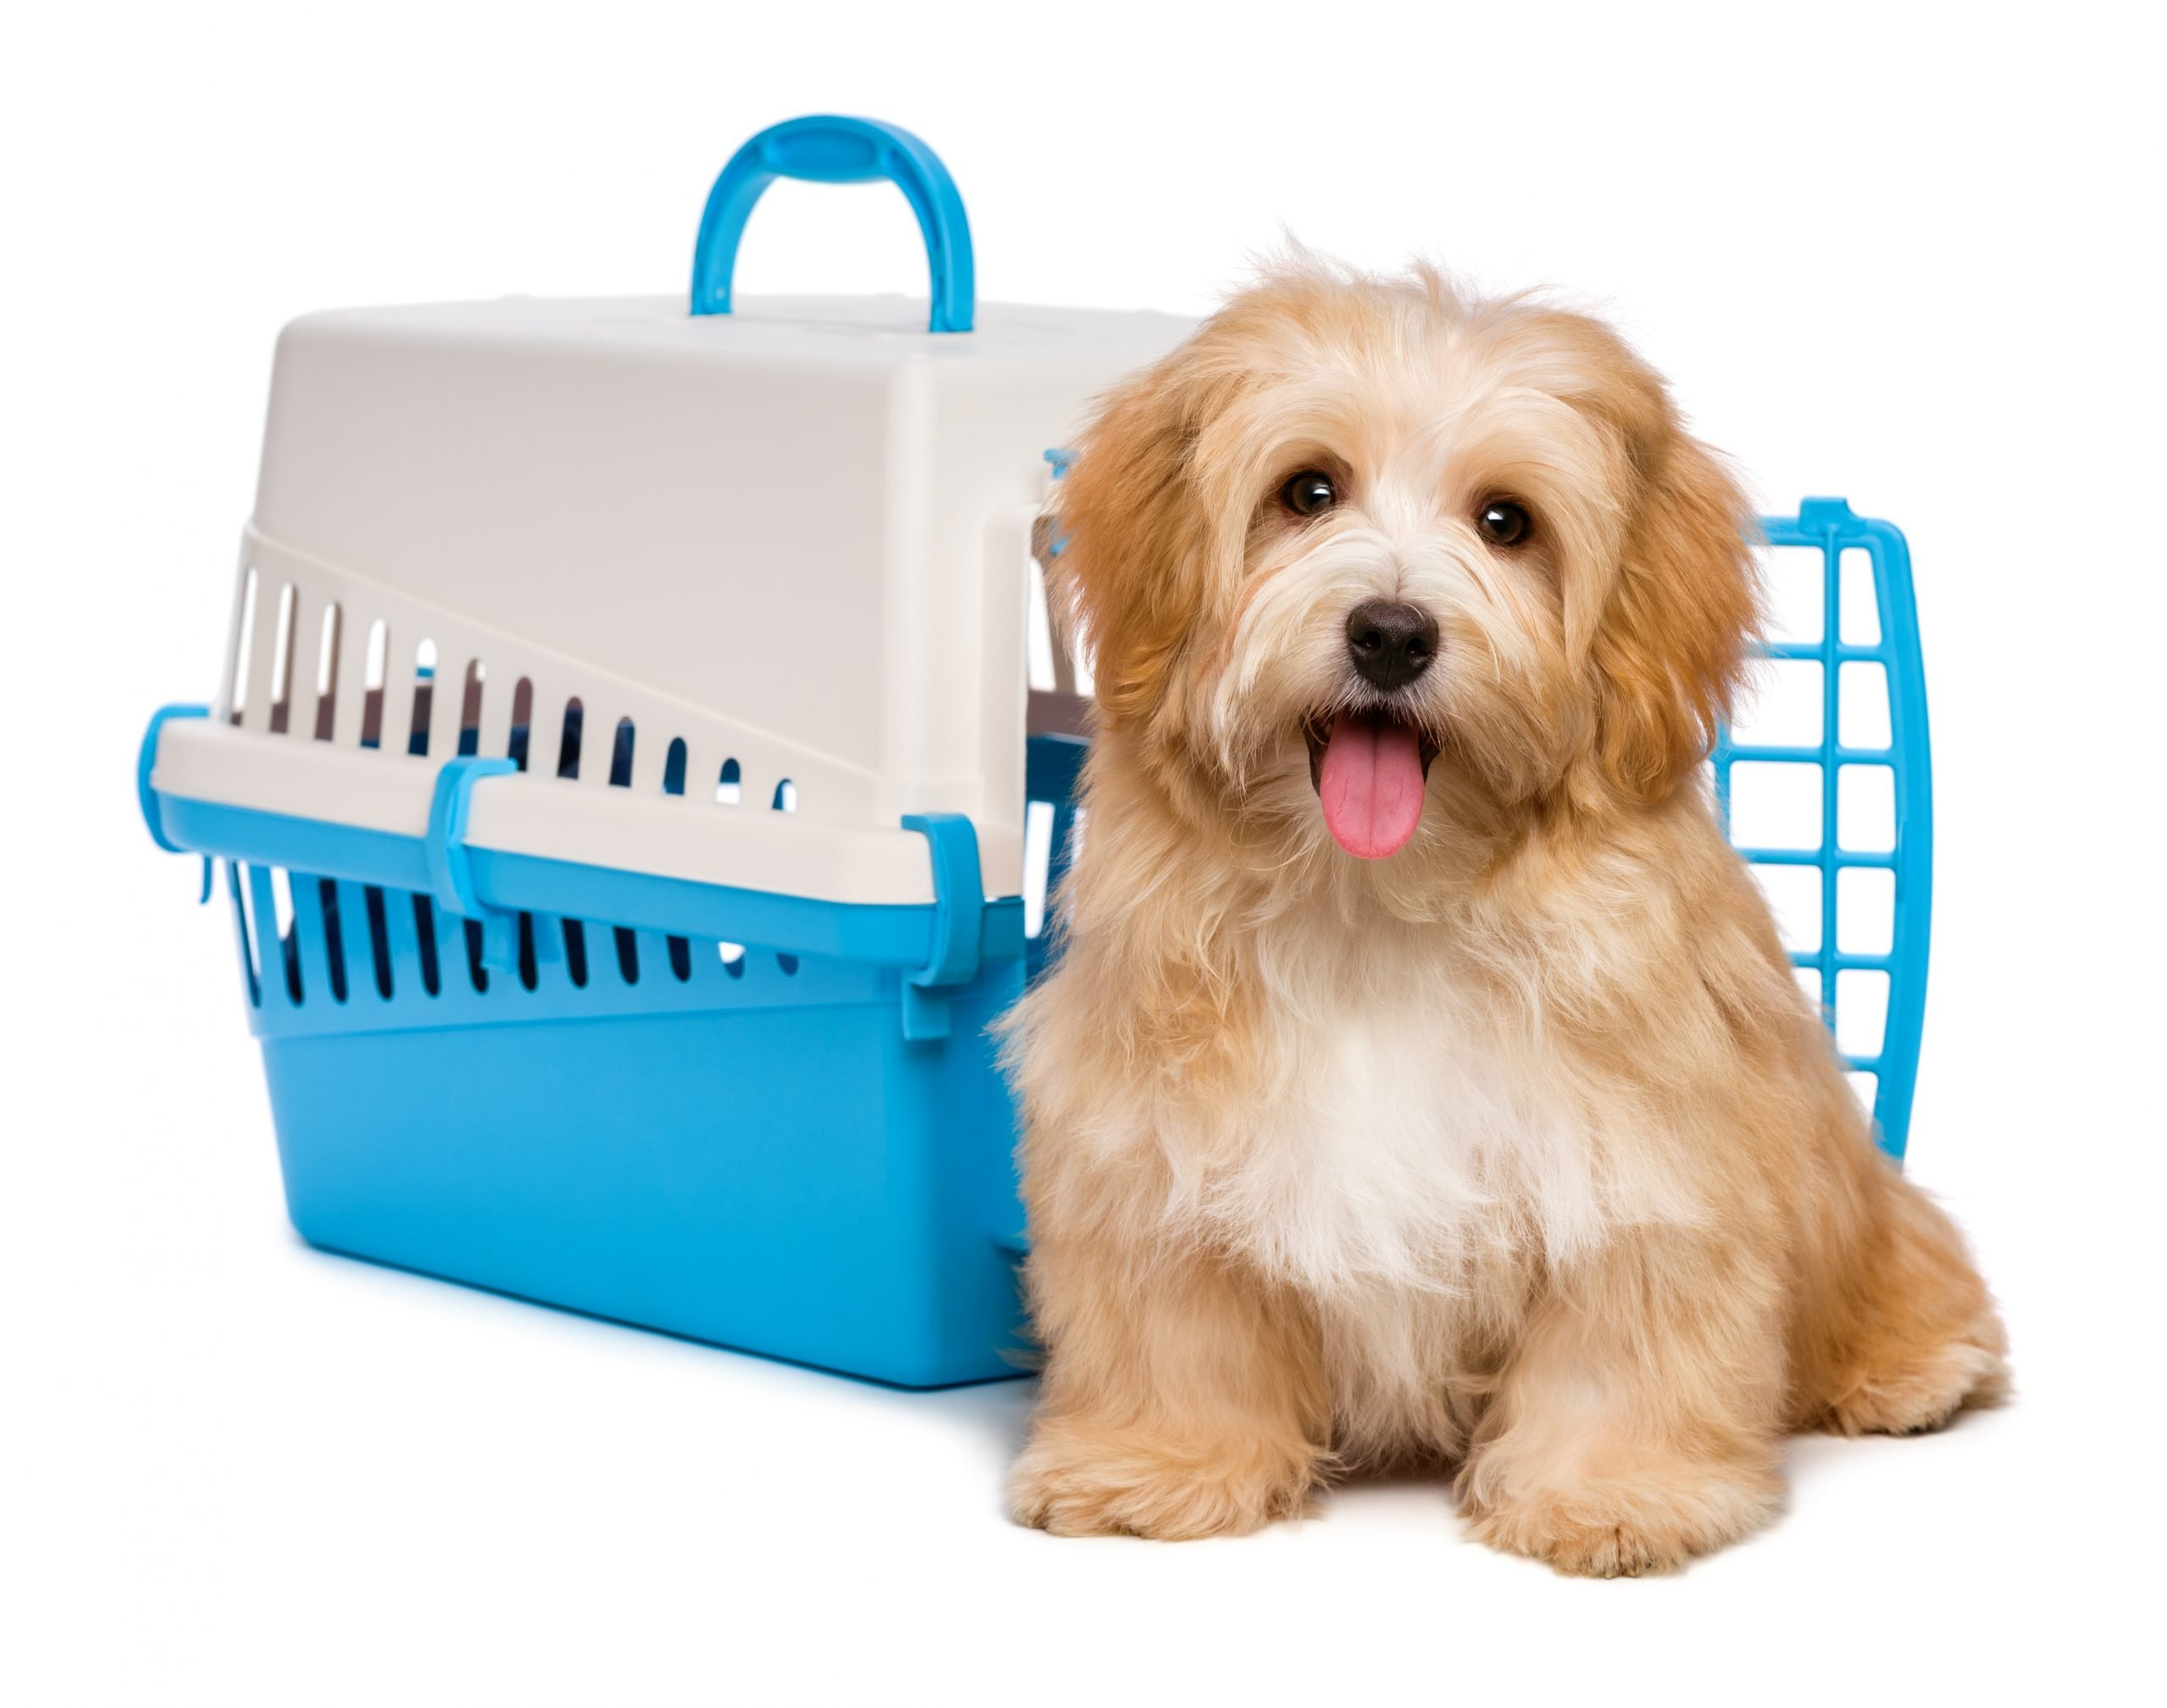 Day four: Crate Training – How to Get it Right